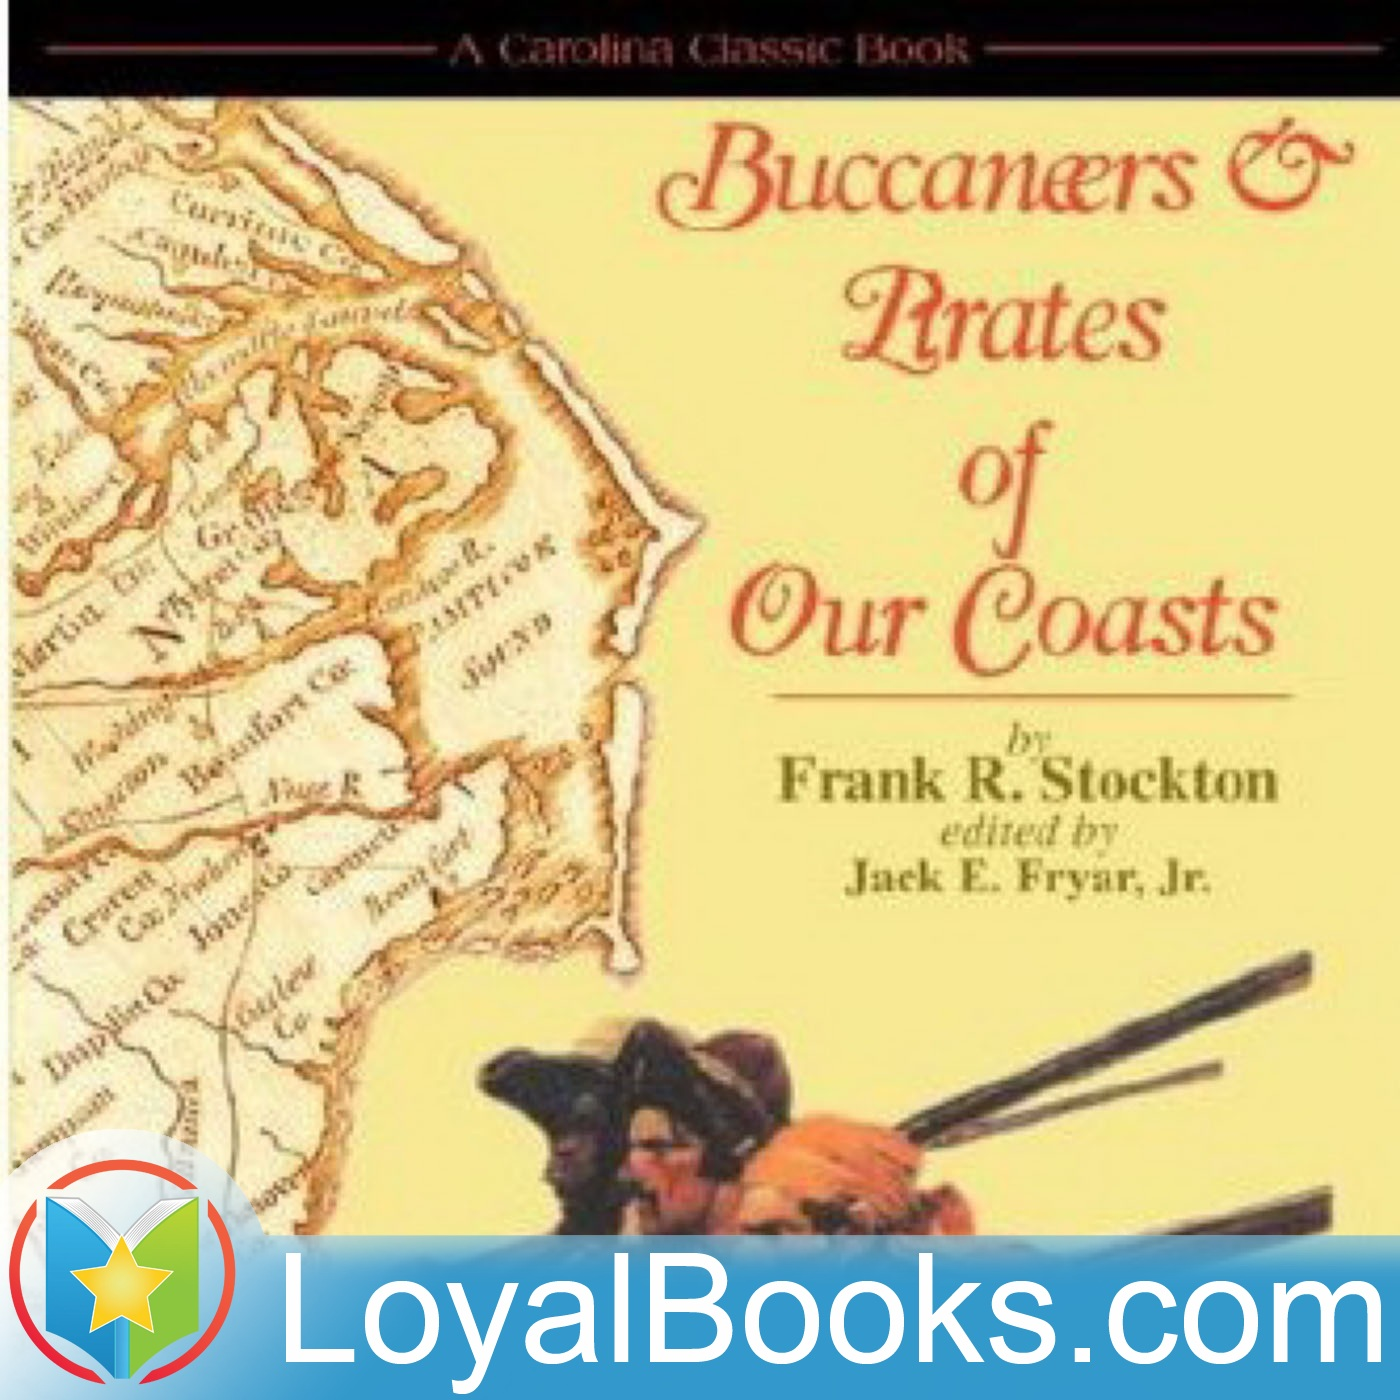 <![CDATA[Buccaneers and Pirates of Our Coasts by Frank R. Stockton]]>